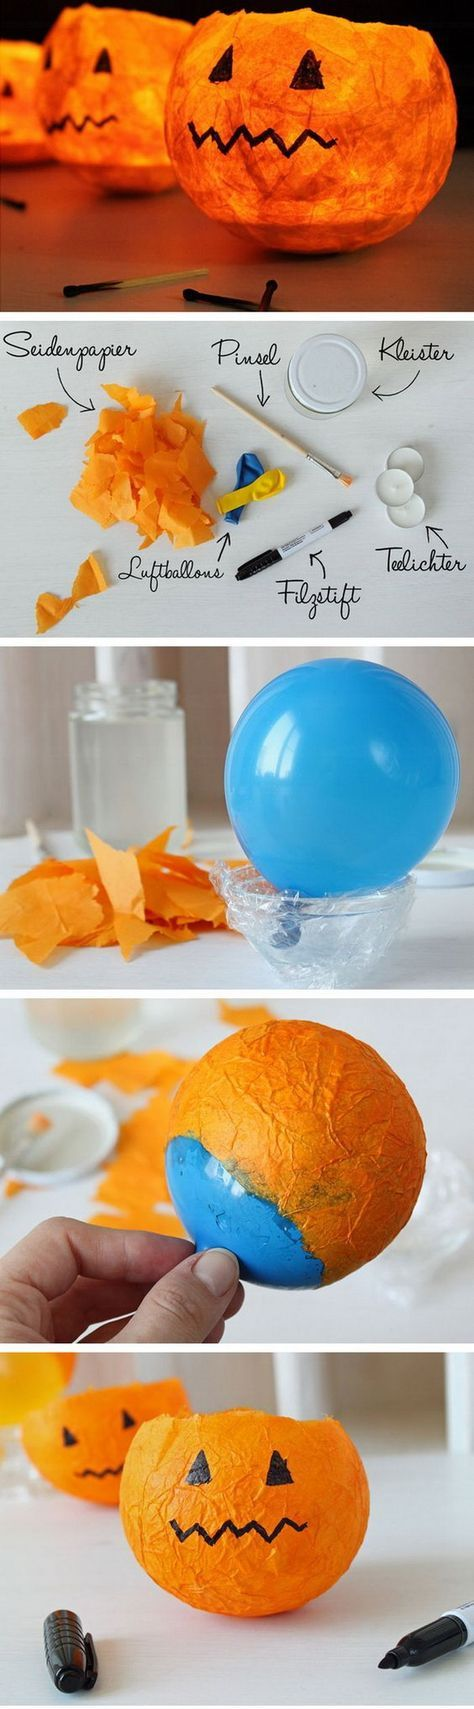 DIY Pumpkin Wind Light. Light up some night time fun with an easy DIY pumpkin wind lantern light! Easy and fun to make with a balloon!